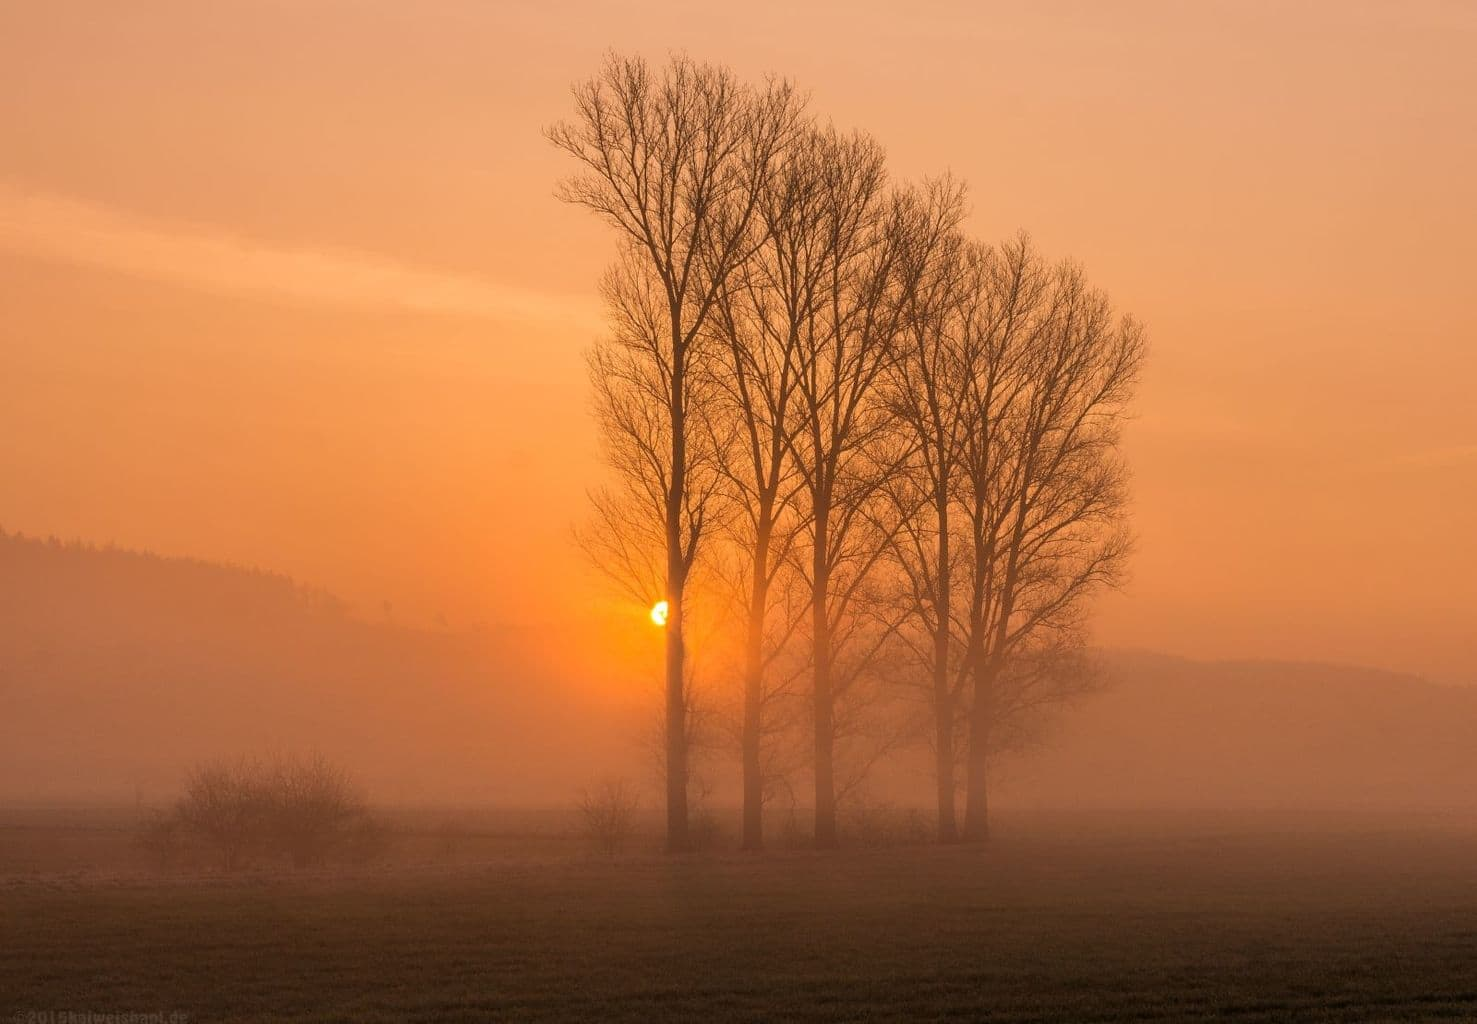 Foggy Sunrise in middle of Germany 19.03.2015